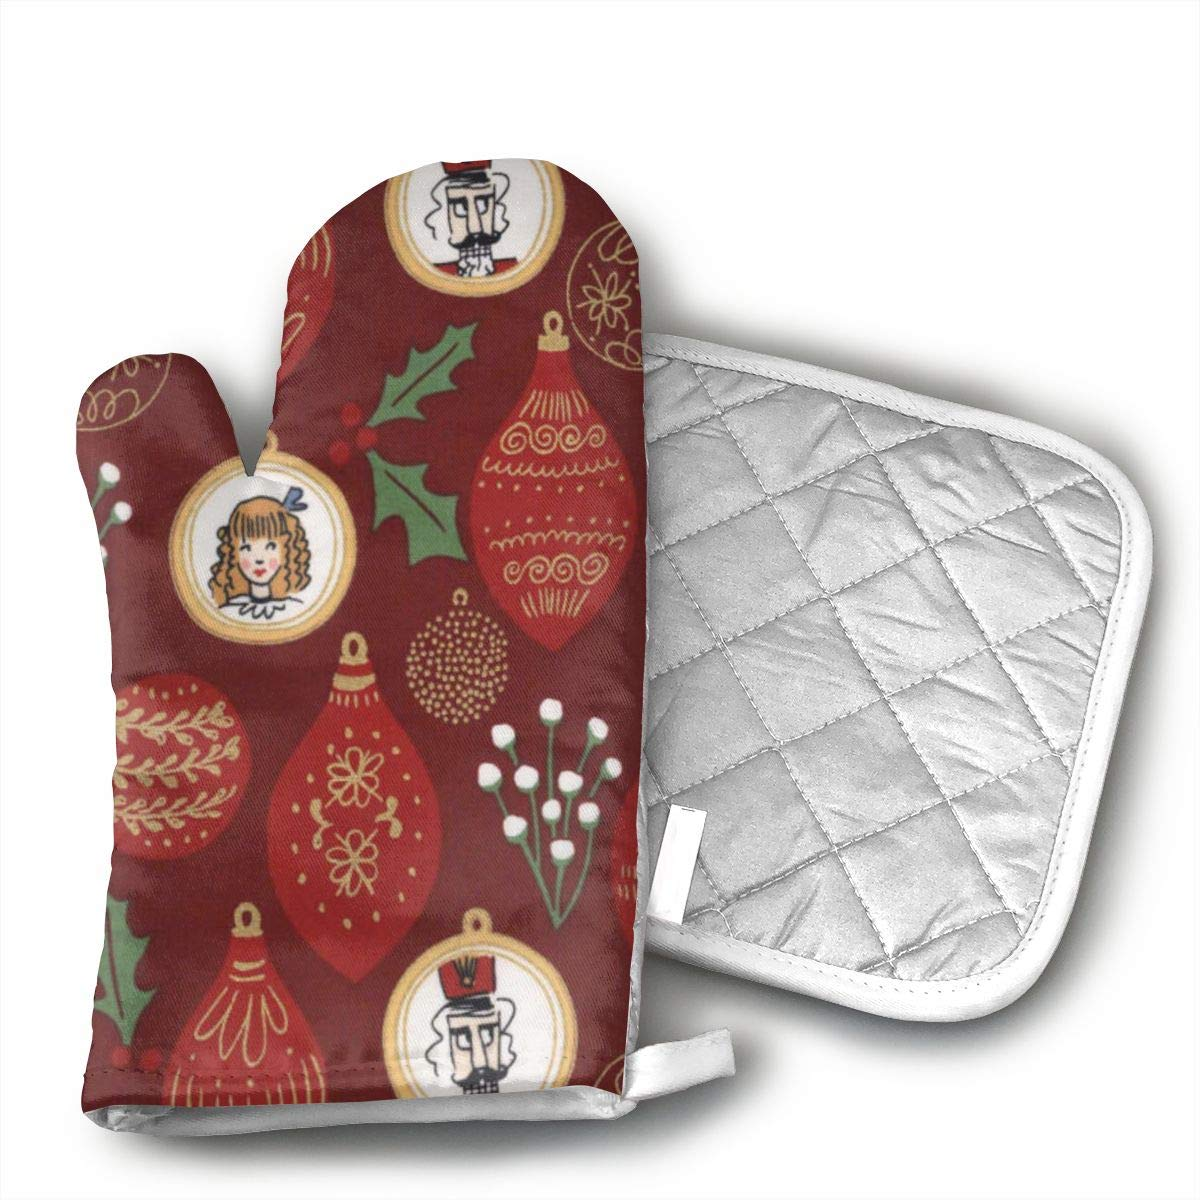 HGUIDHG Michael Miller Nutcracker Metallic Ornaments Burgundy Oven Mitts+Insulated Square Mat,Heat Resistant Kitchen Gloves Soft Insulated Deep Pockets, Non-Slip Handles